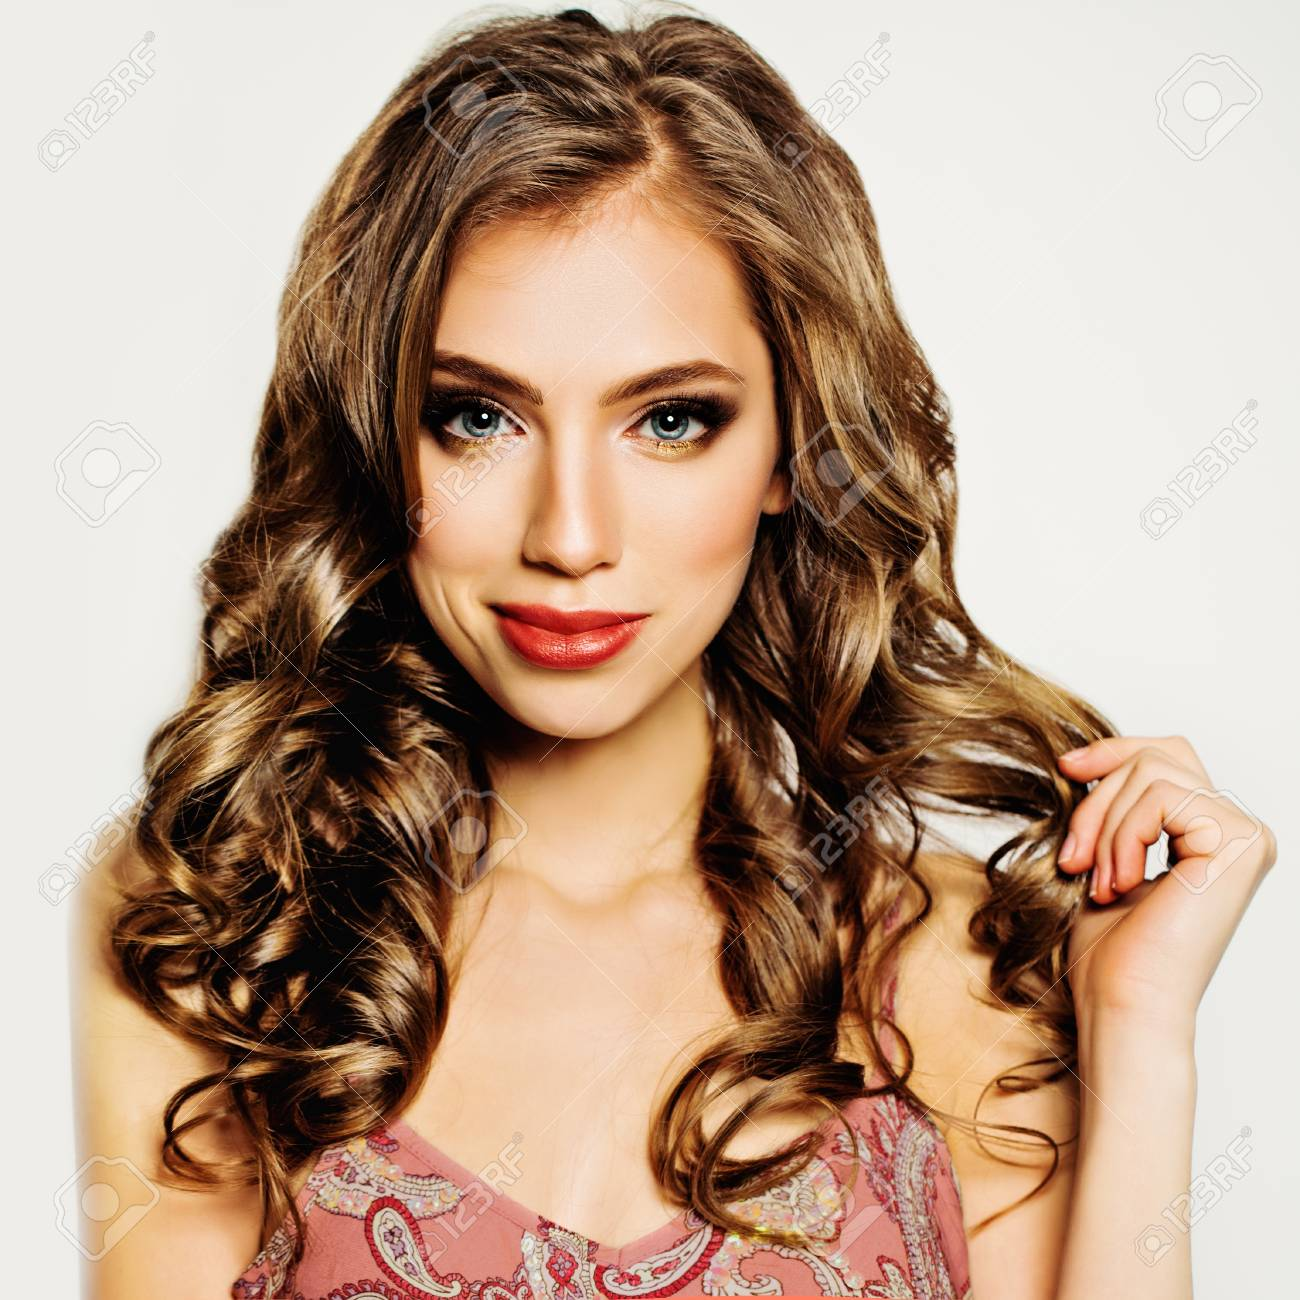 Curly Hair Girl Beautiful Woman Fashion Hairstyle And Make